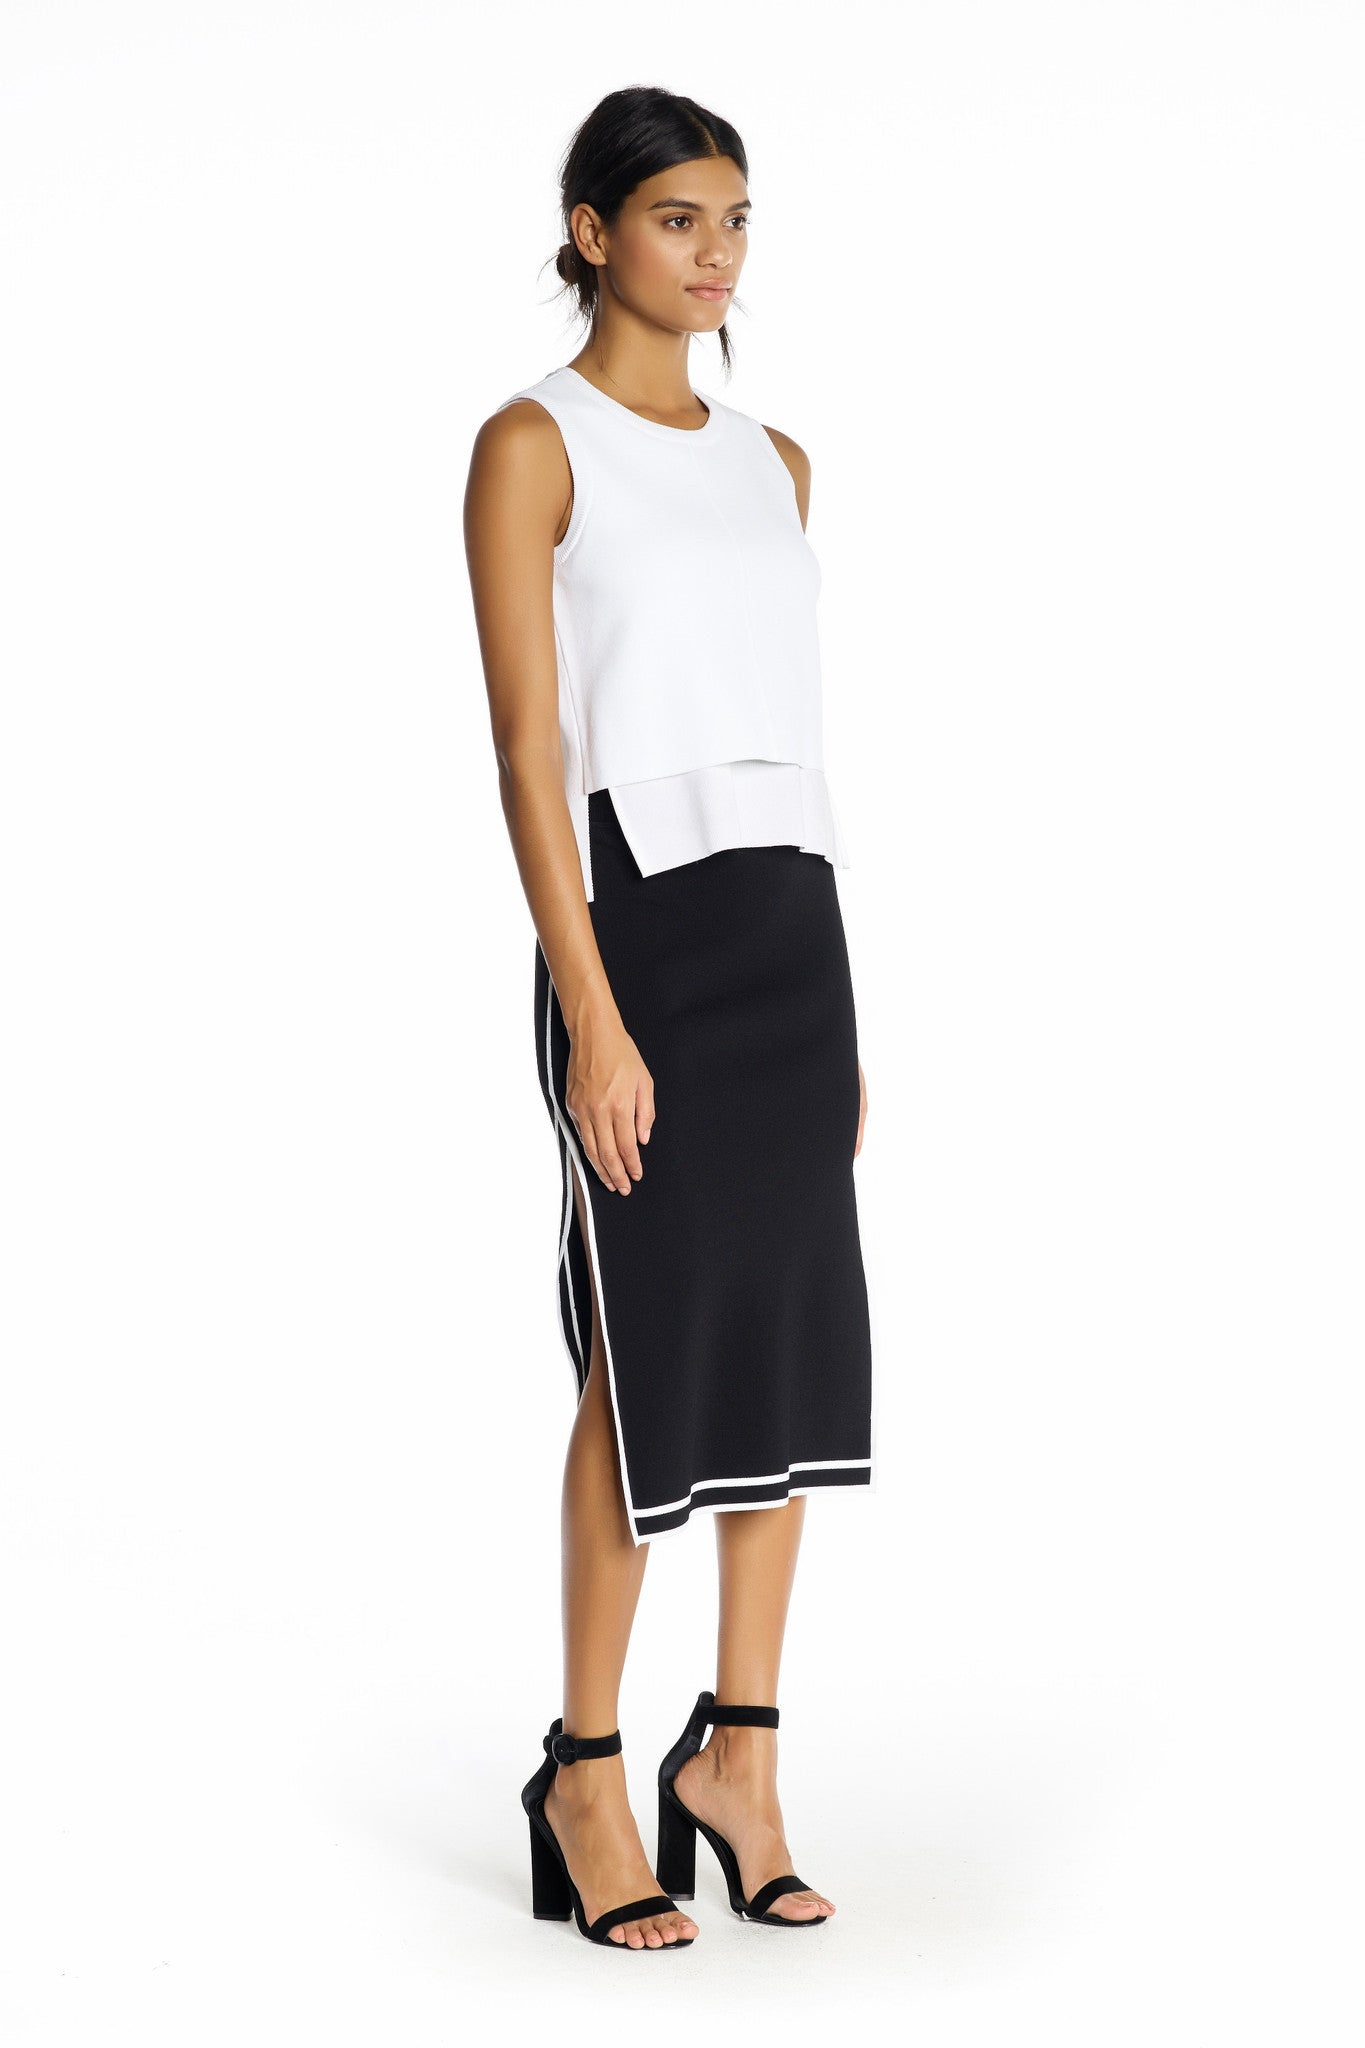 SPORTS BORDER SKIRT BLACK SKIRTS by KENDALL + KYLIE